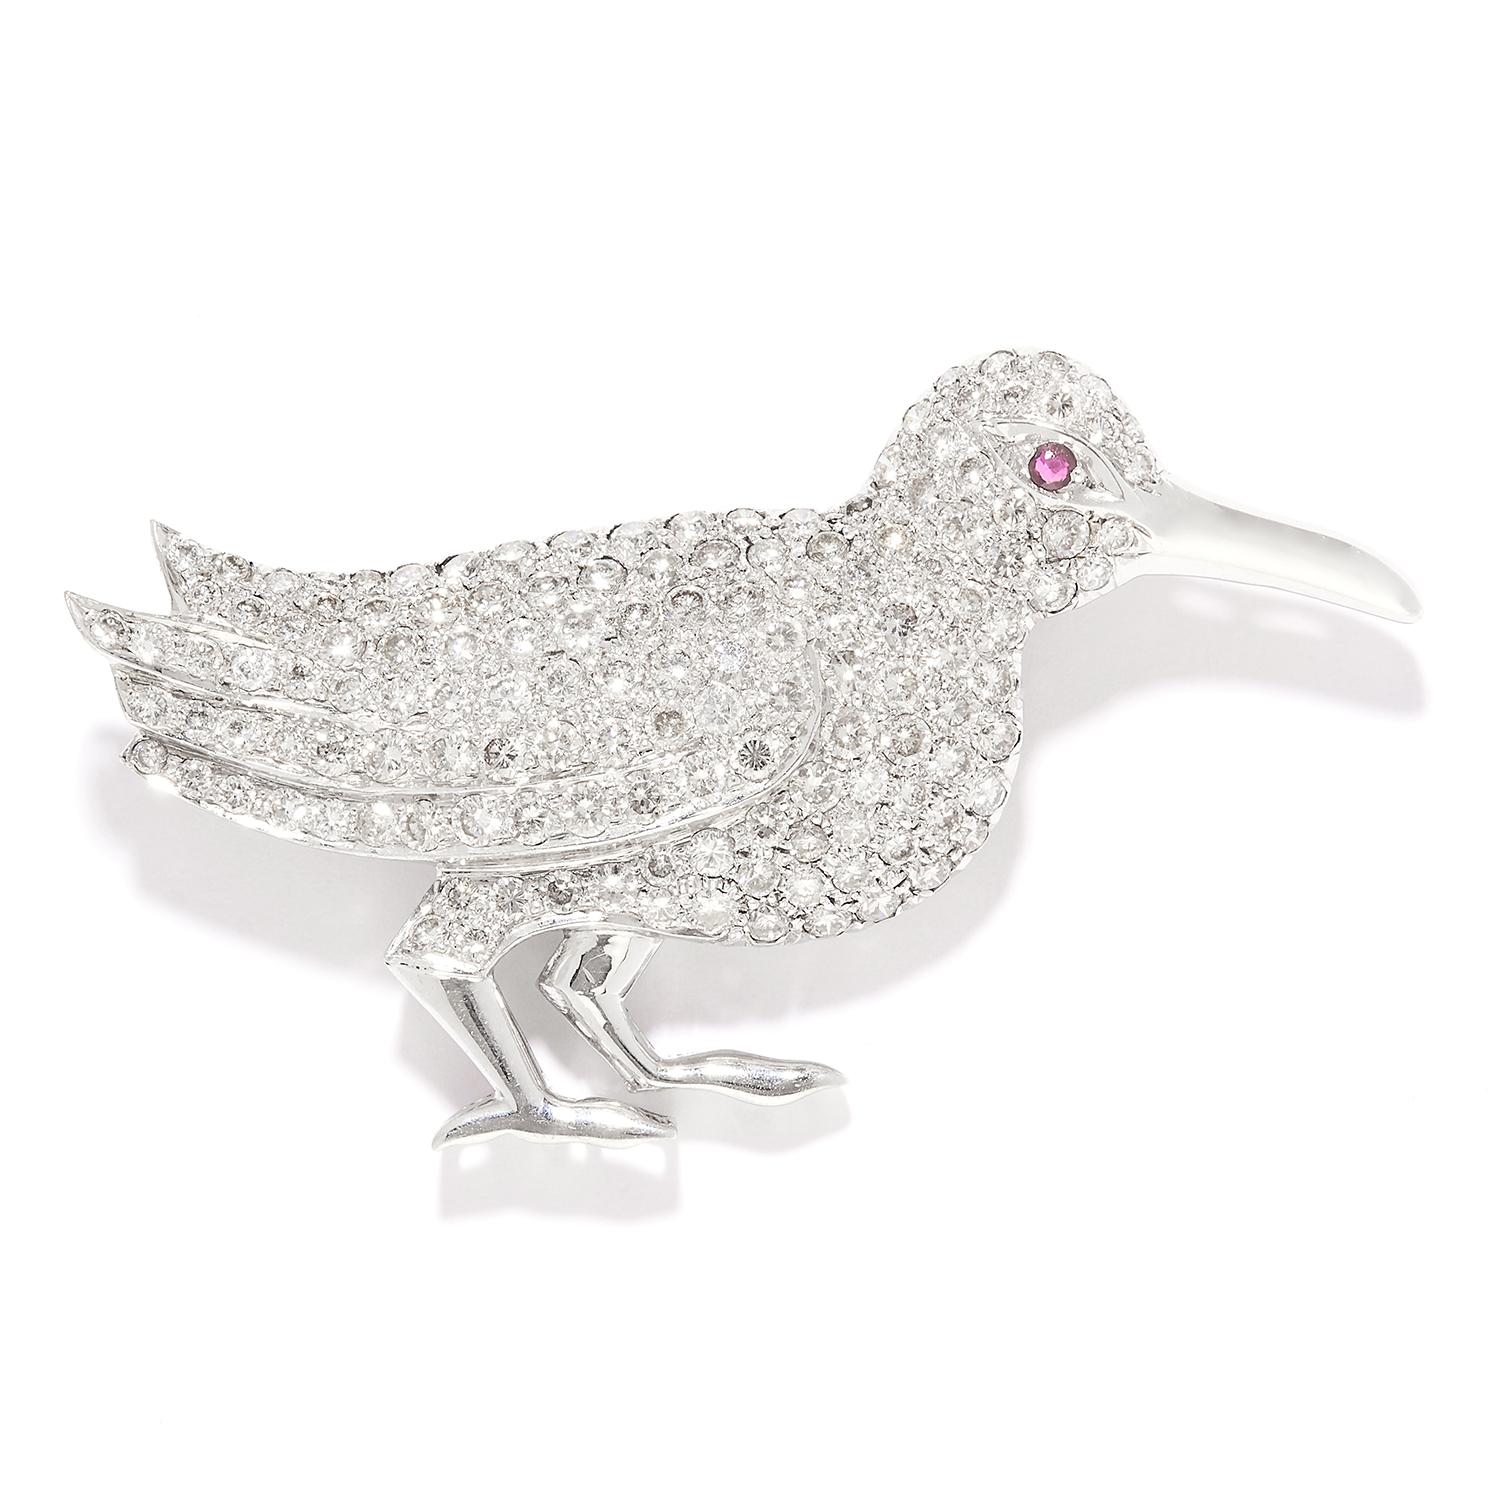 RUBY AND DIAMOND BIRD BROOCH in 18ct white gold, designed as a bird, its body jewelled with round